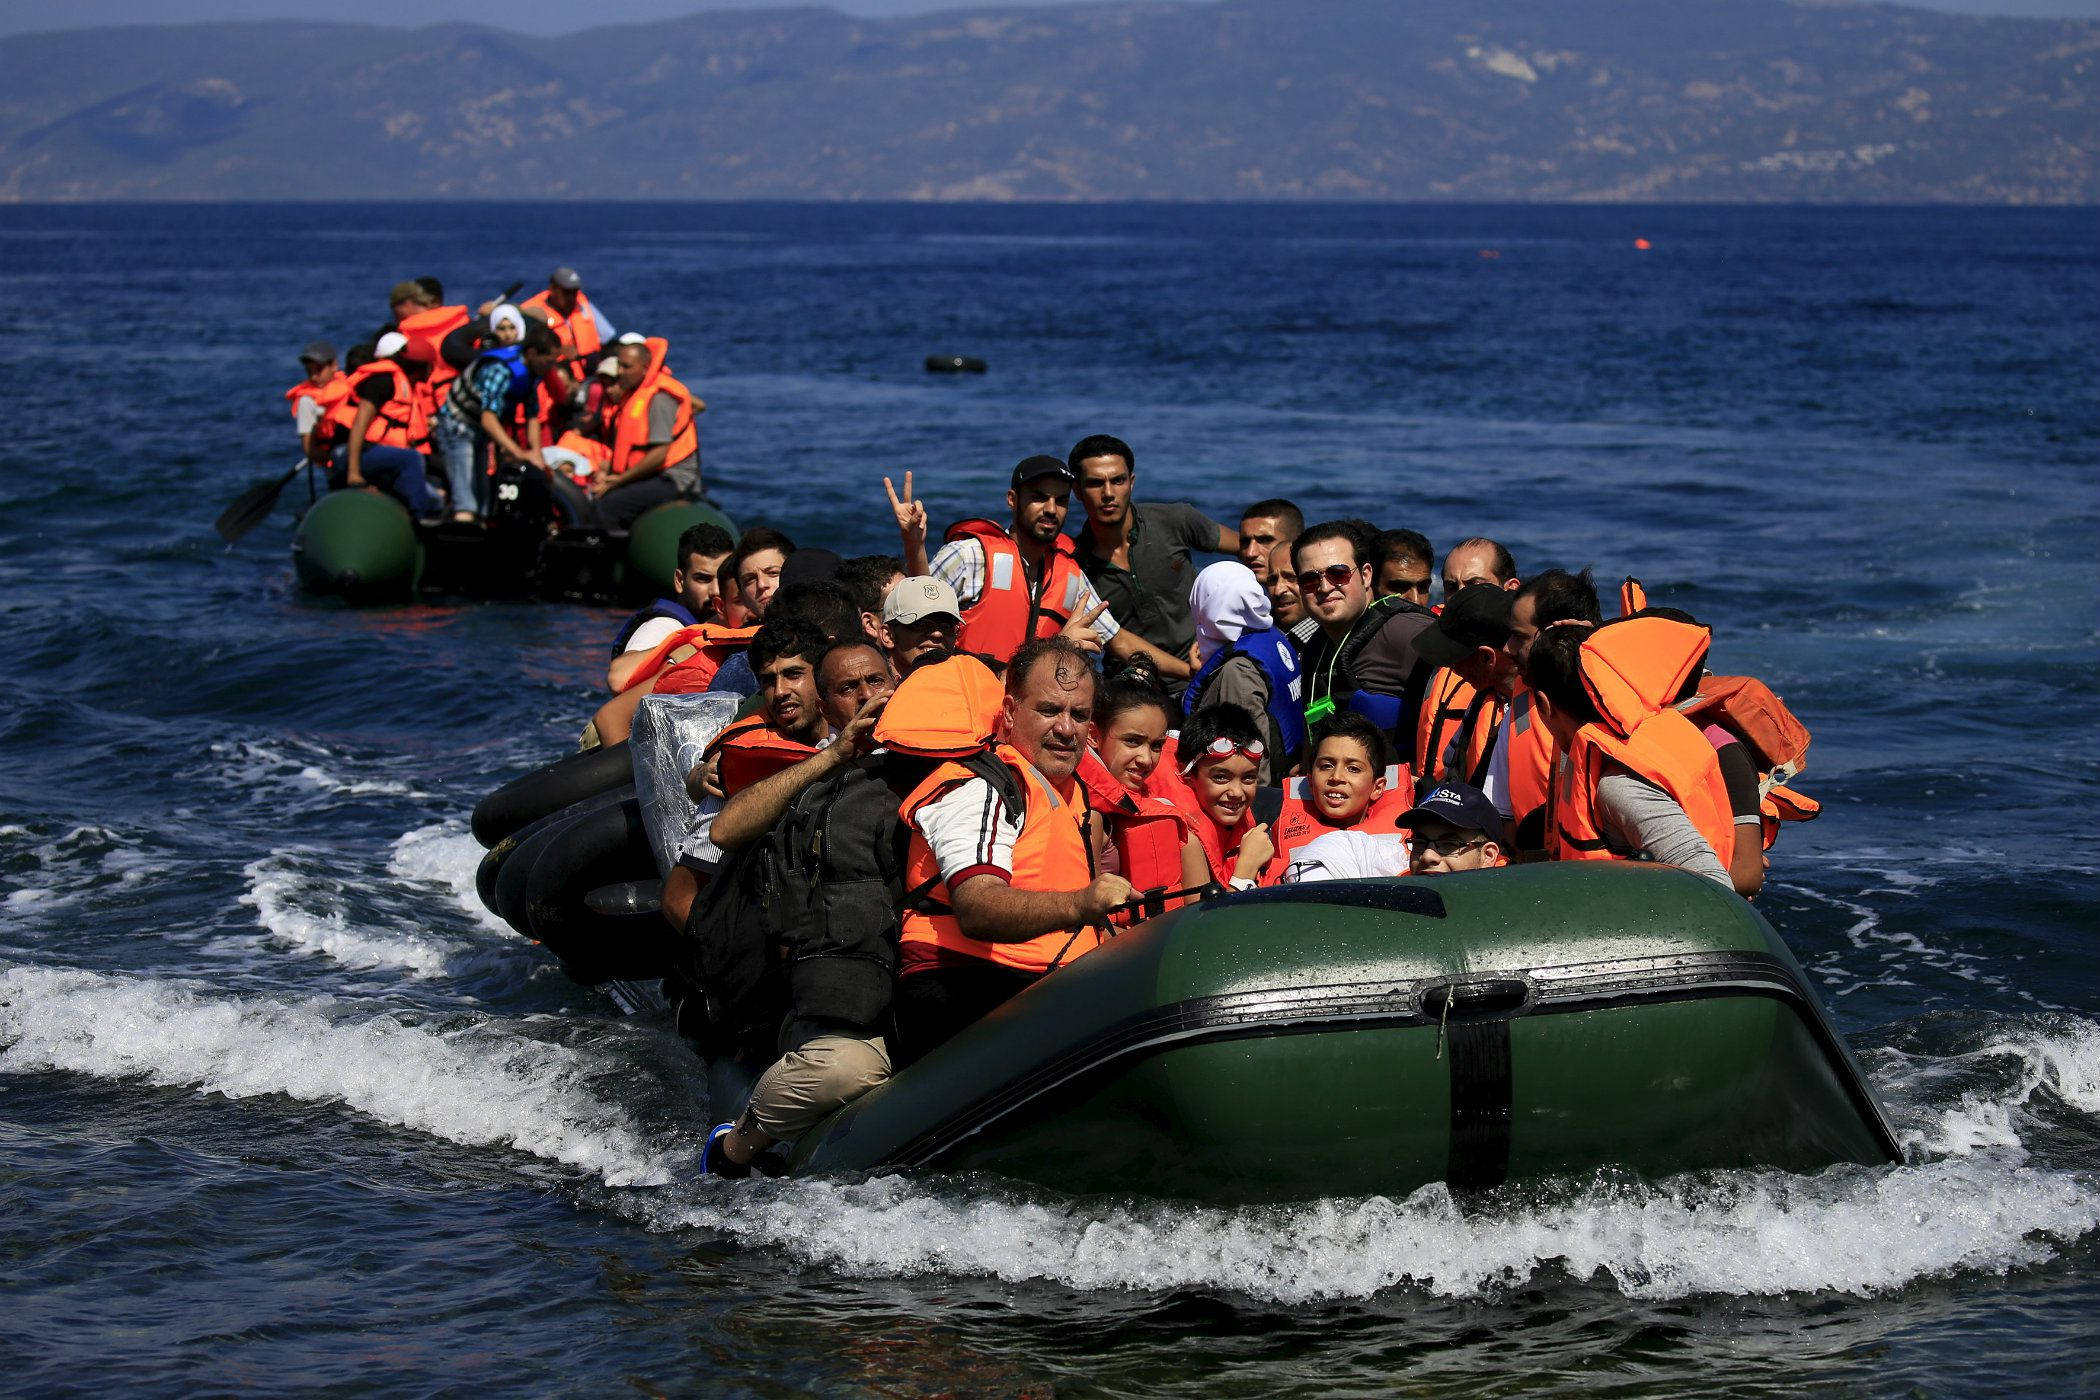 DATE IMPORTED:August 22, 2015Syrian refugees arrive on two dinghies on the island of Lesbos, Greece August 22, 2015. Greece ferried hundreds of refugees to its mainland on Friday to relieve the pressure on outlying islands that have been overwhelmed by thousands of people arriving by boat to flee Syria's civil war. REUTERS/Alkis Konstantinidis